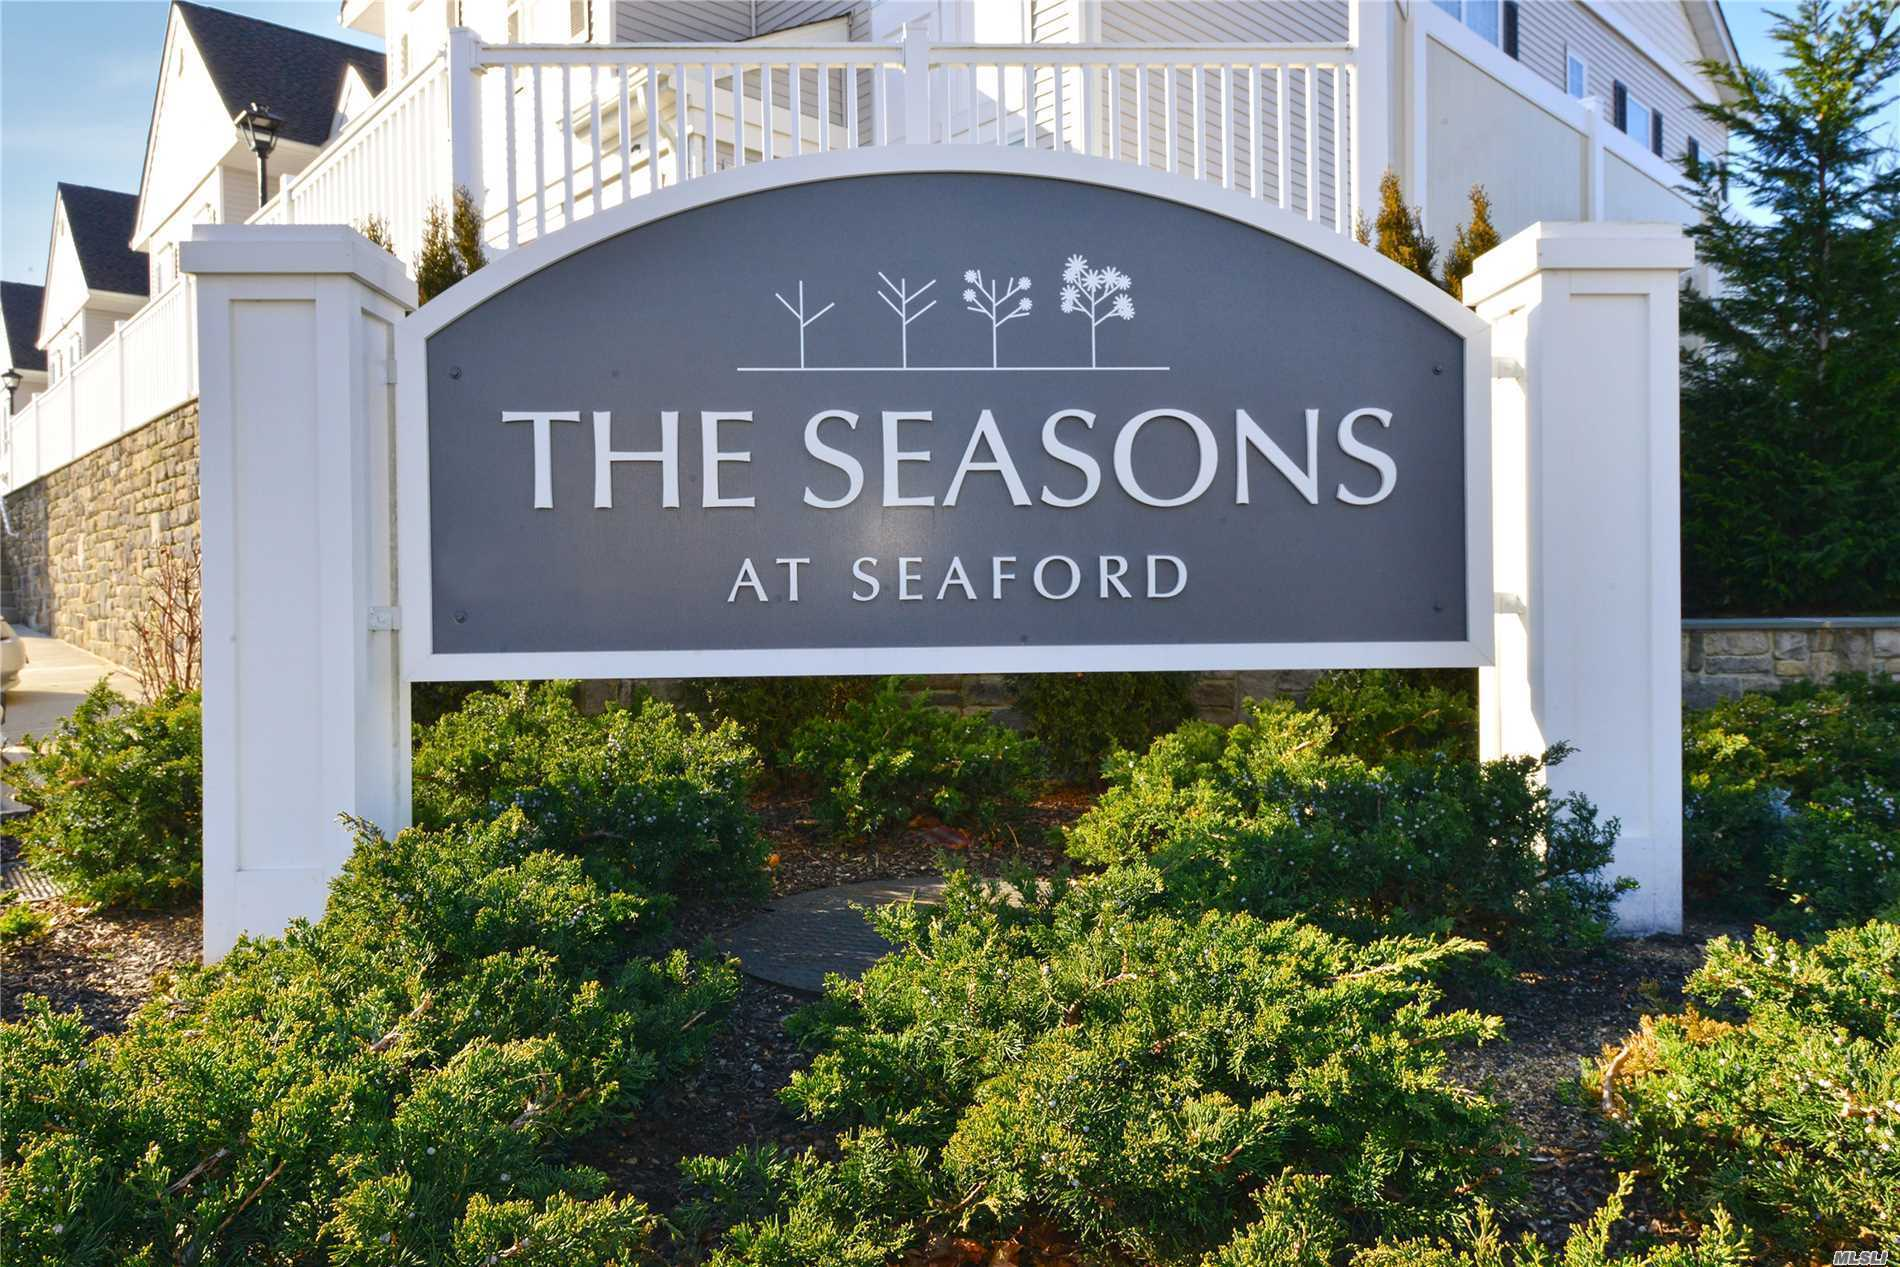 The Seasons Of Seaford - Brand New, Spacious Condo In Beautiful Condition. Many Upgrades Include: Finished Basement, High Hats, High End Carpeting, Shower Doors, Cabinets, Crown Moldings Oversized W/D, Stainless Steel Appliances- Too Much To List. Clubhouse With Gym And Pool. Small Community 62+.Close To All.